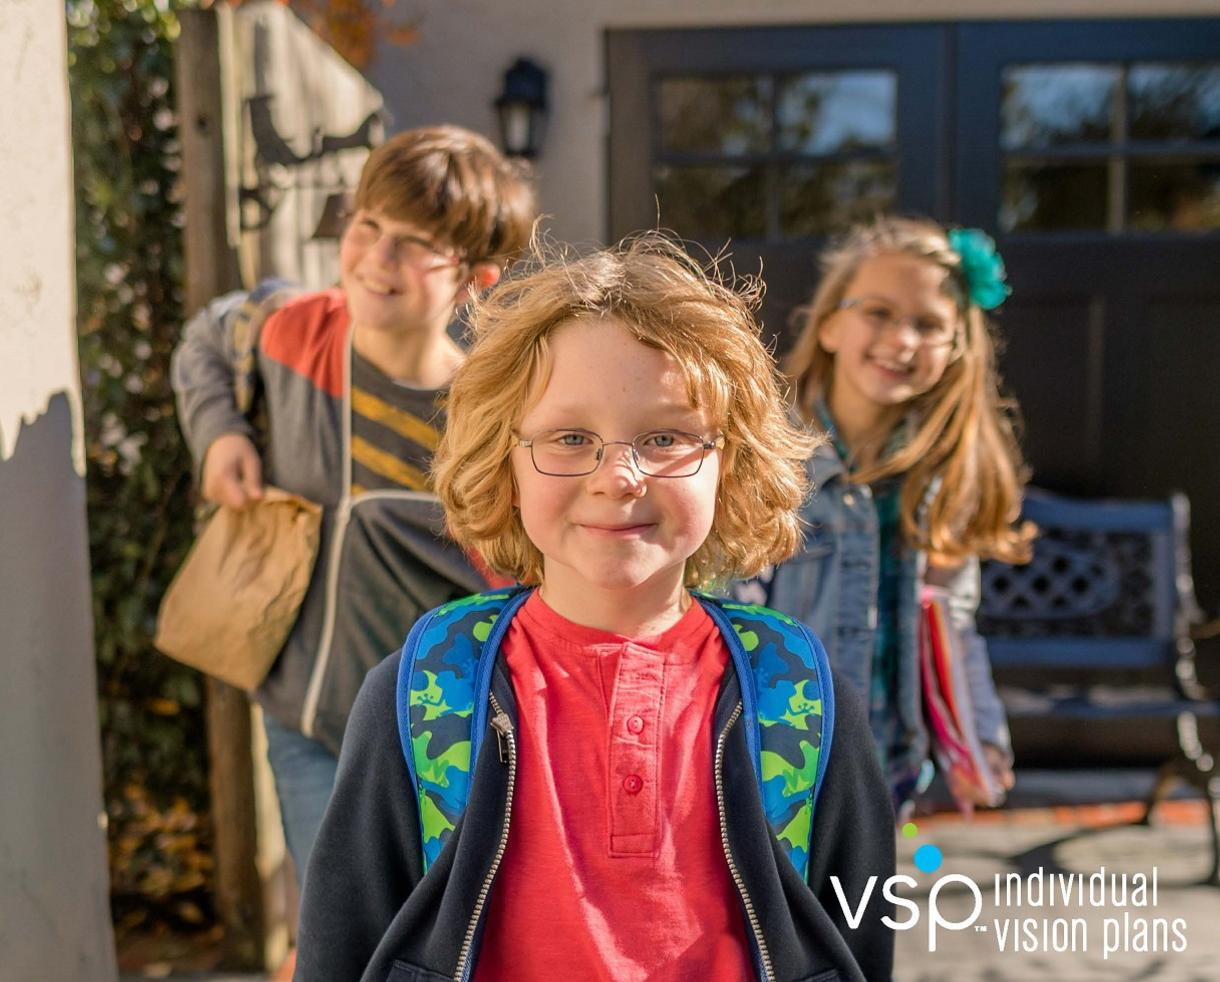 Quality, Affordable Vision Care for as low as $17 Per Month With VSP® Individual Vision Plans!